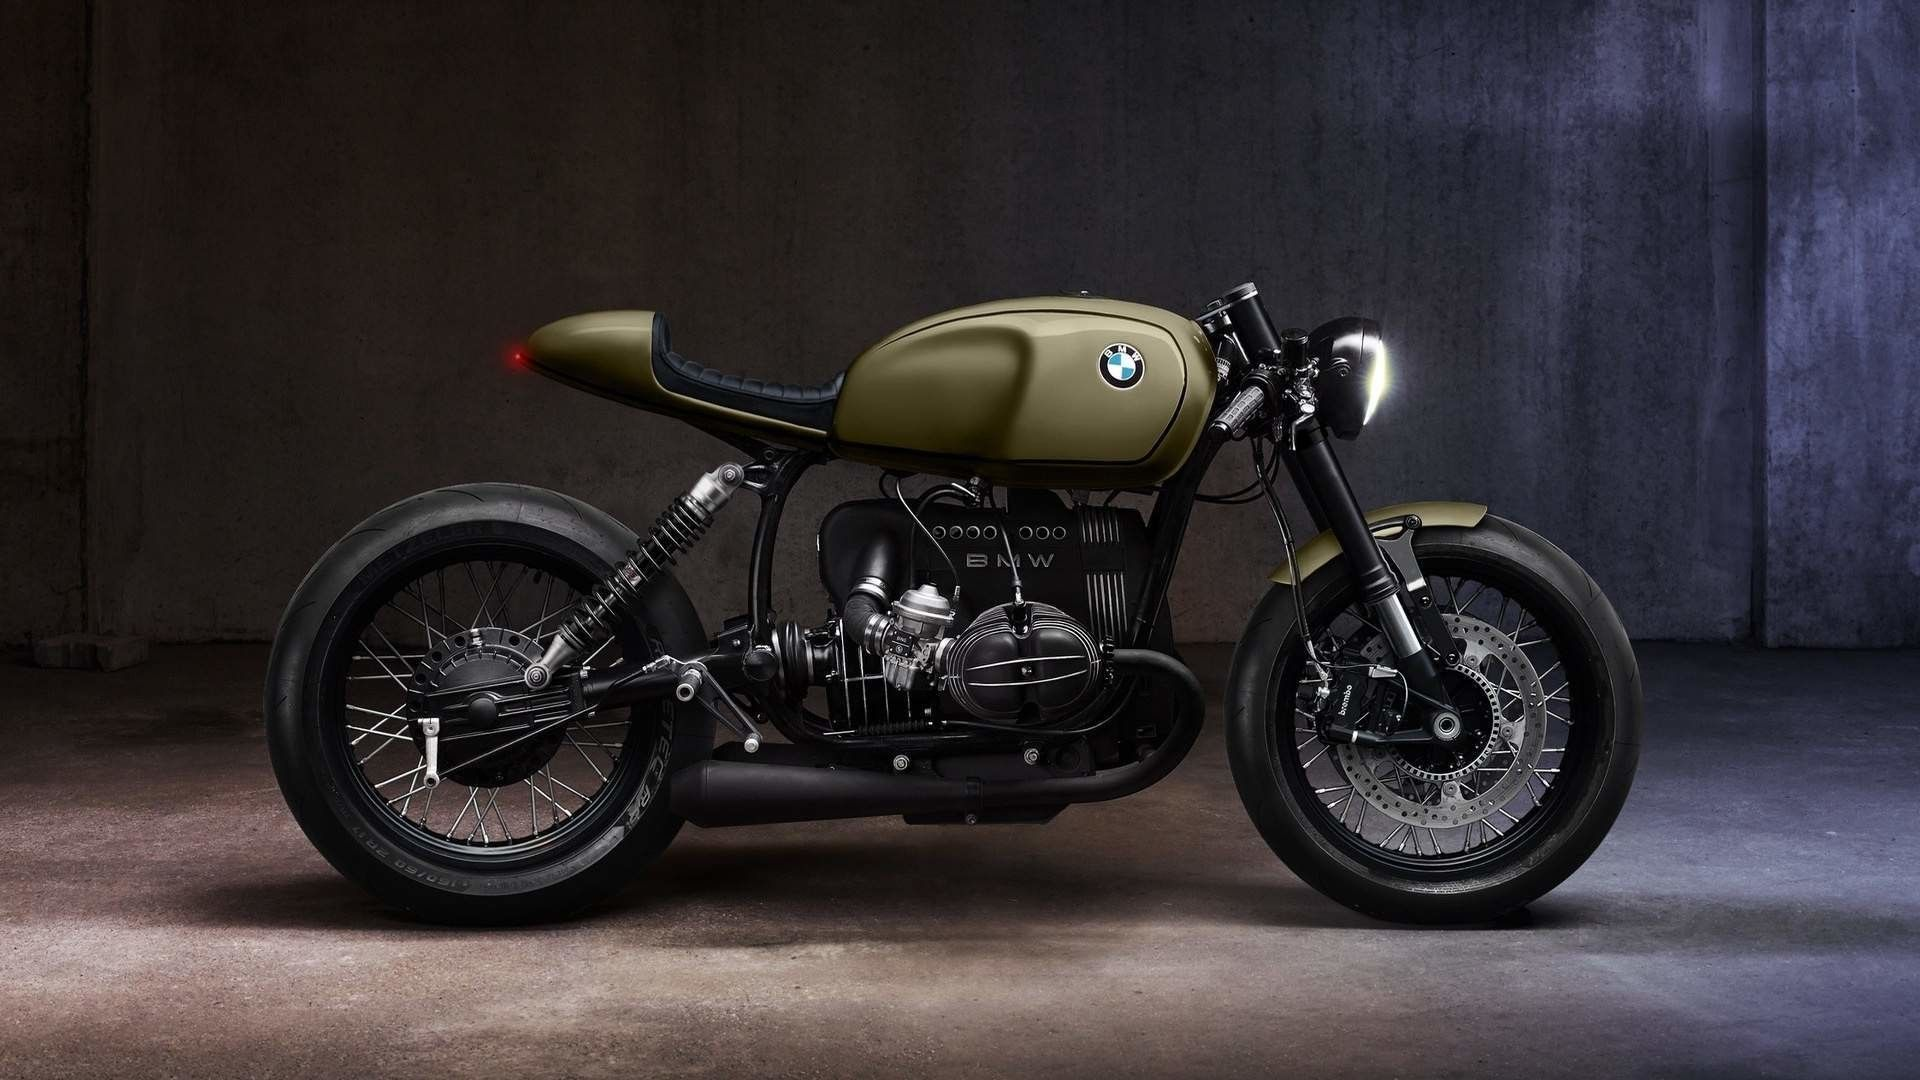 Cafe Racer Motorcycle Wallpapers Top Free Cafe Racer